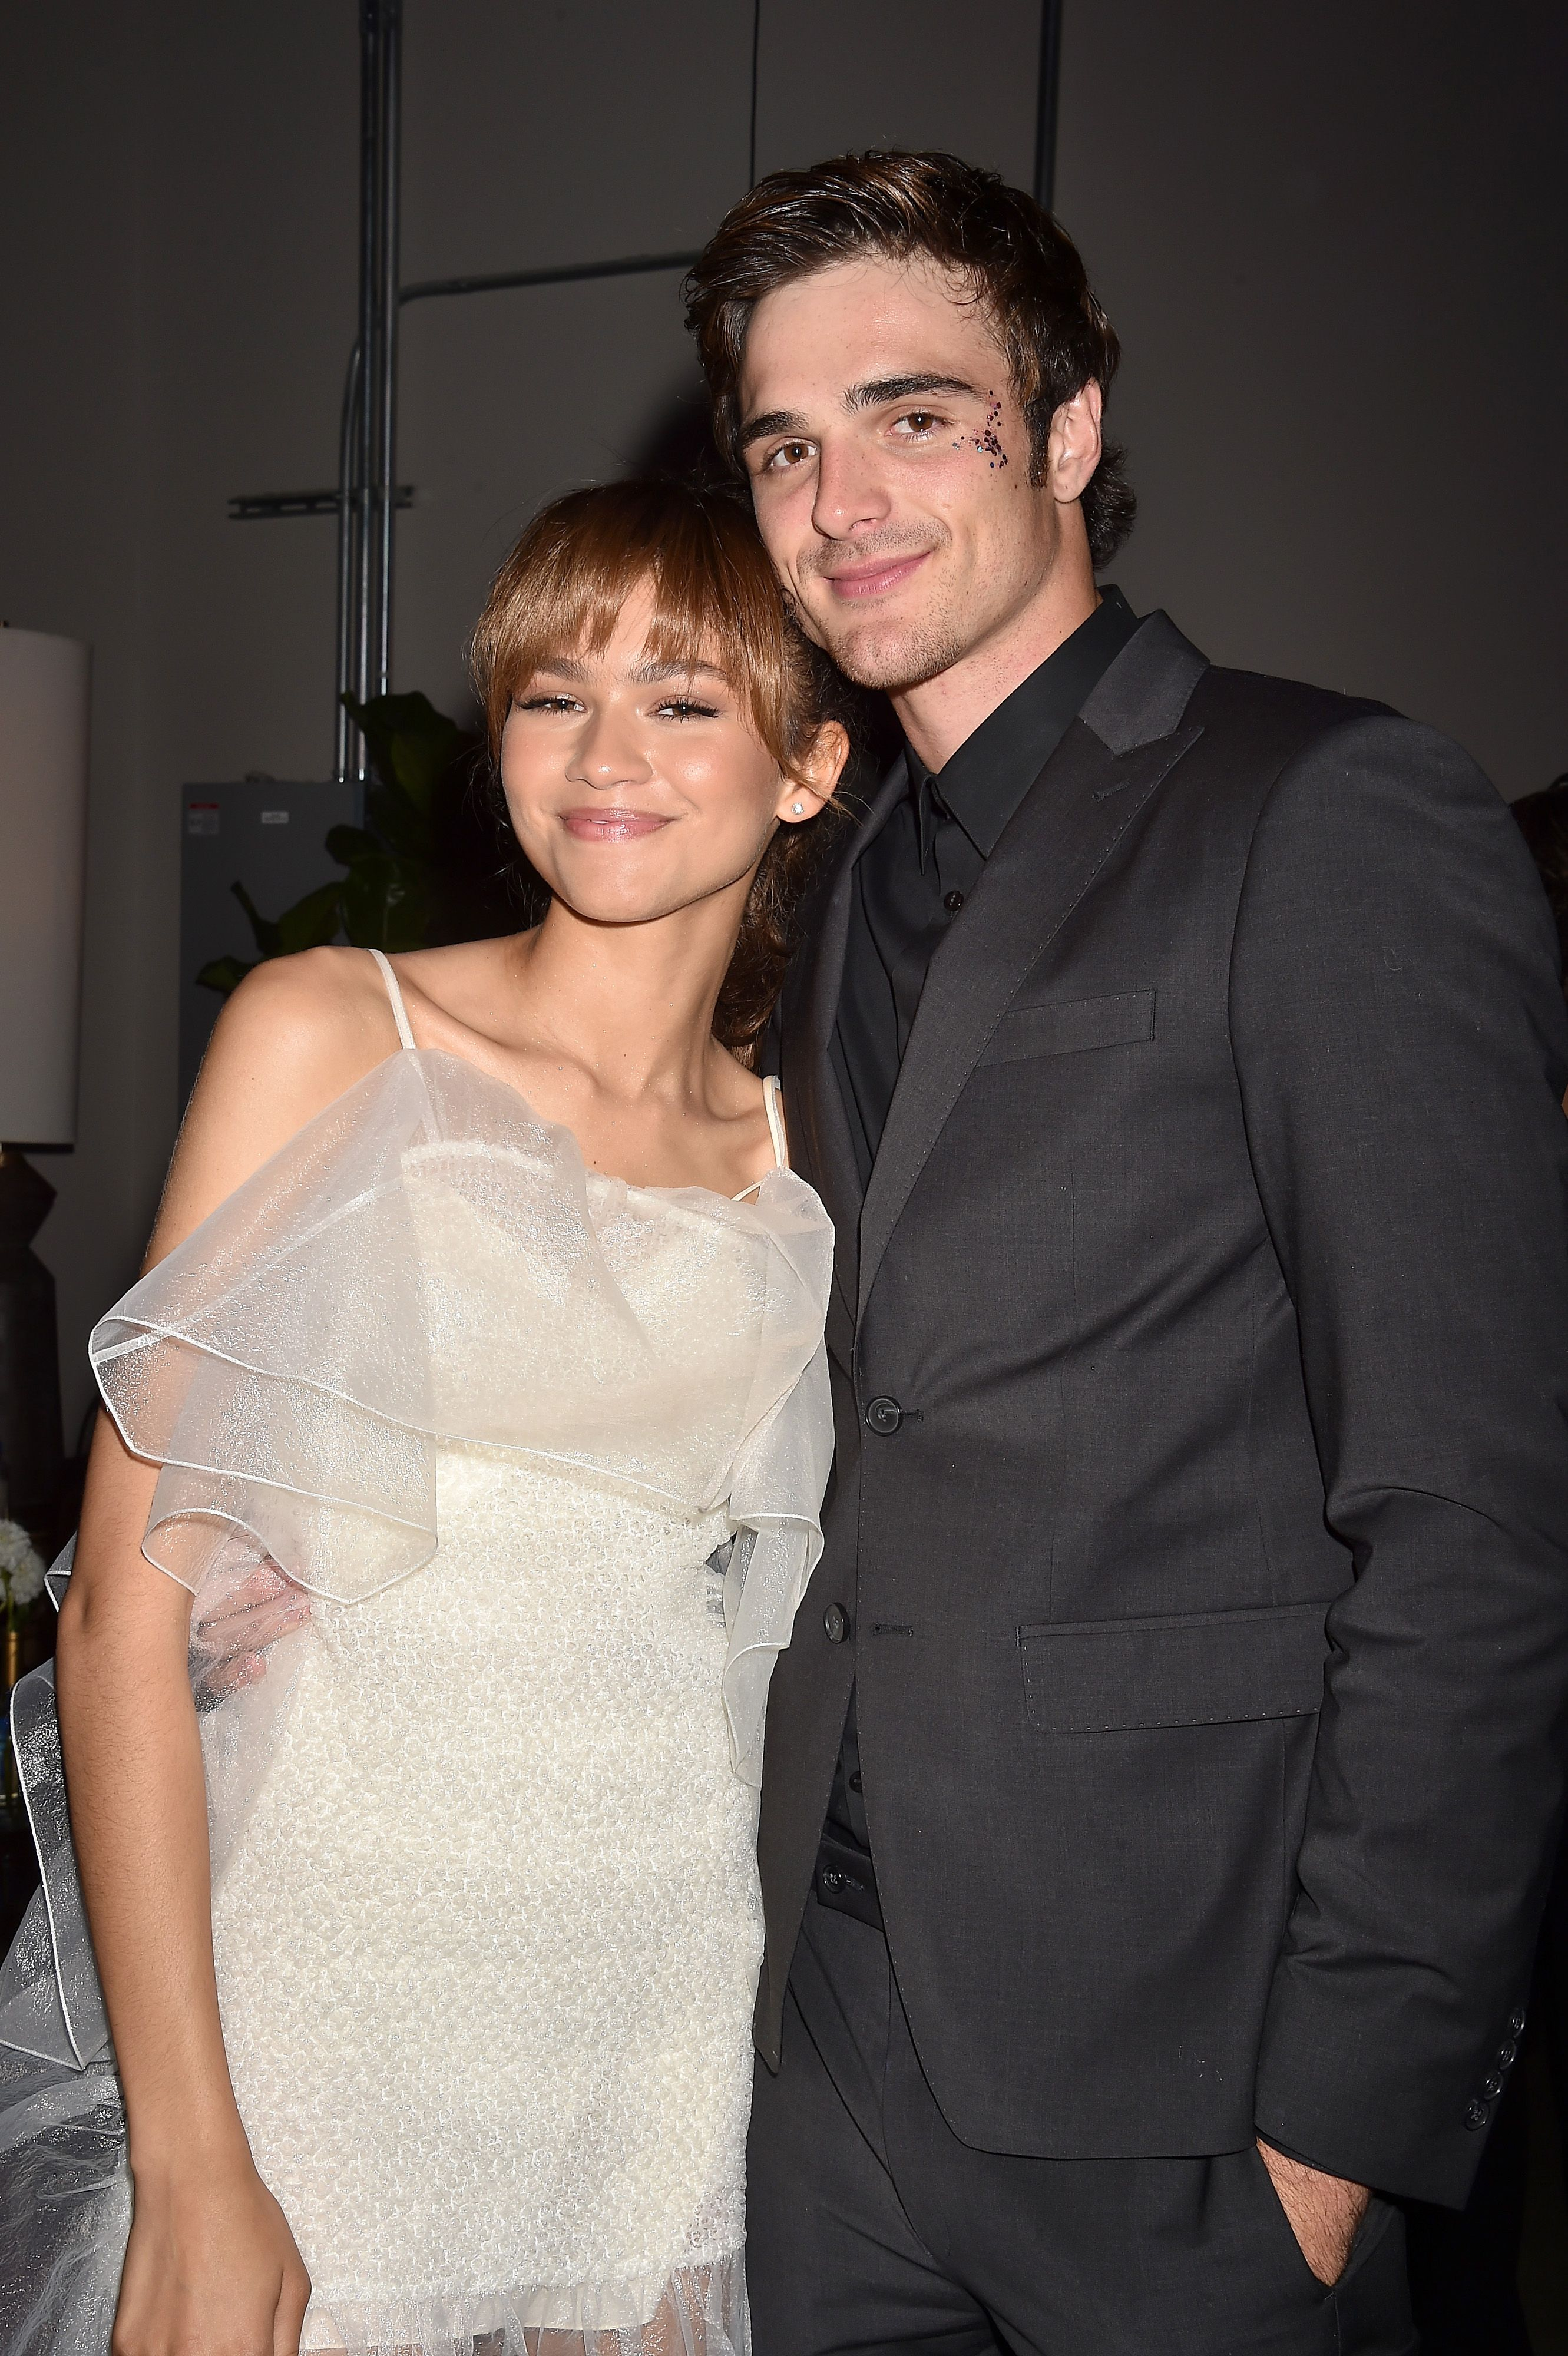 Zendaya Jacob Elordi Have Been Quietly Dating For Months